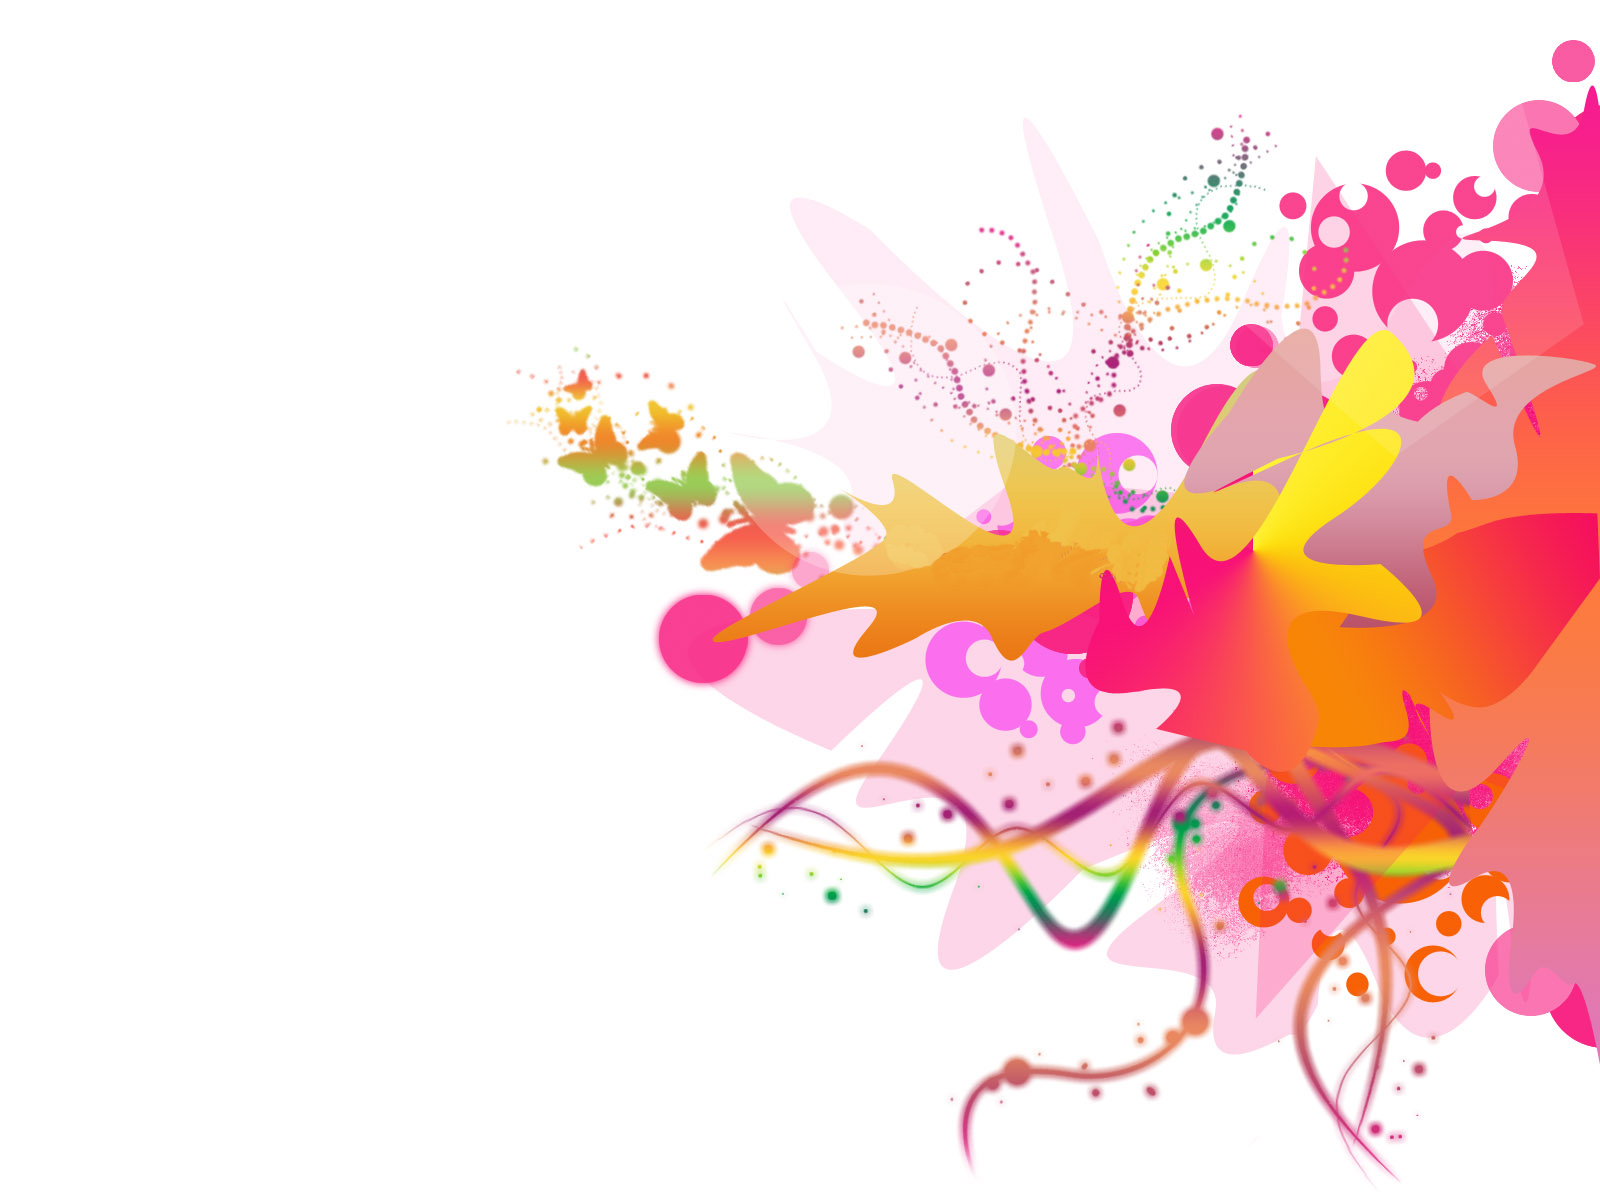 Hd Wallpapers Free Beautiful 2013 Backgrounds Design Download 1080p